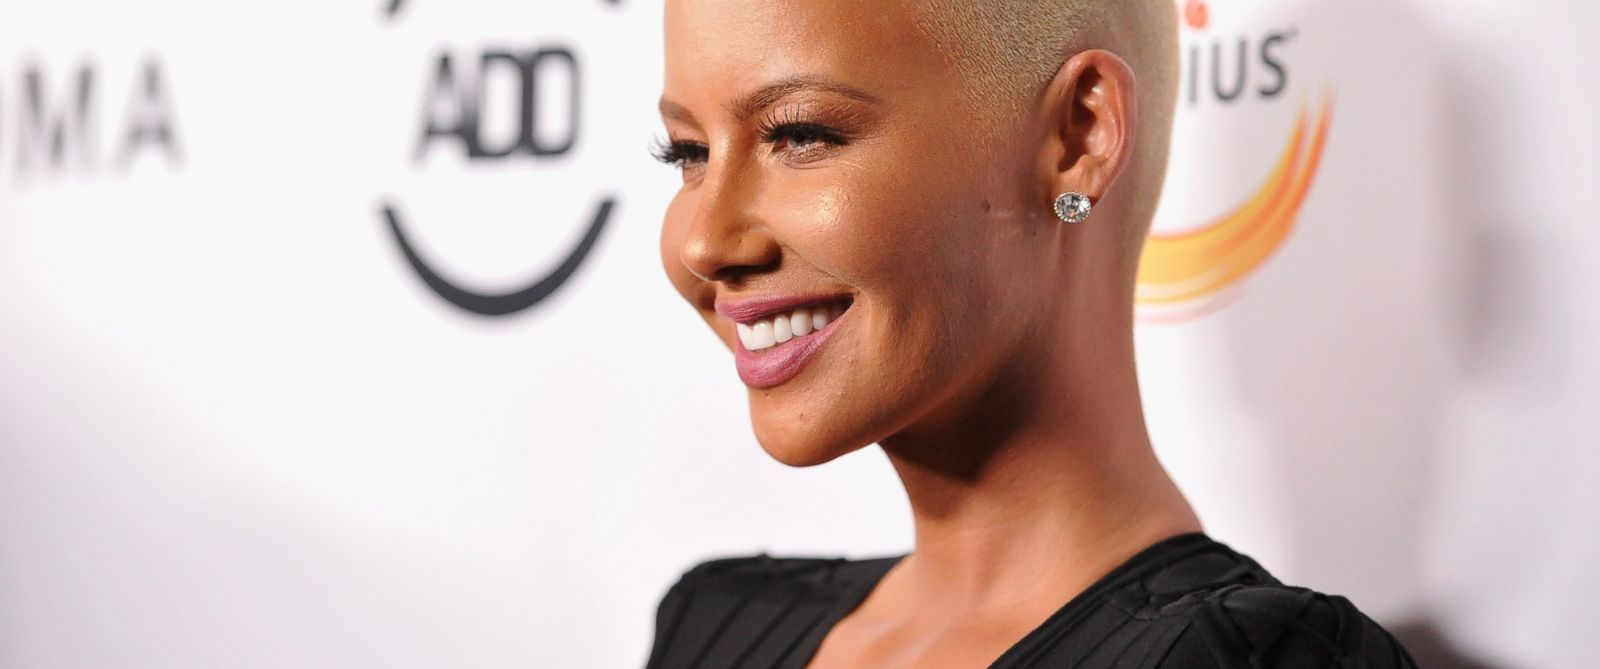 PHOTO: Amber Rose attends the first All Def Movie Awards at Lure Nightclub, Feb. 24, 2016 in Los Angeles.